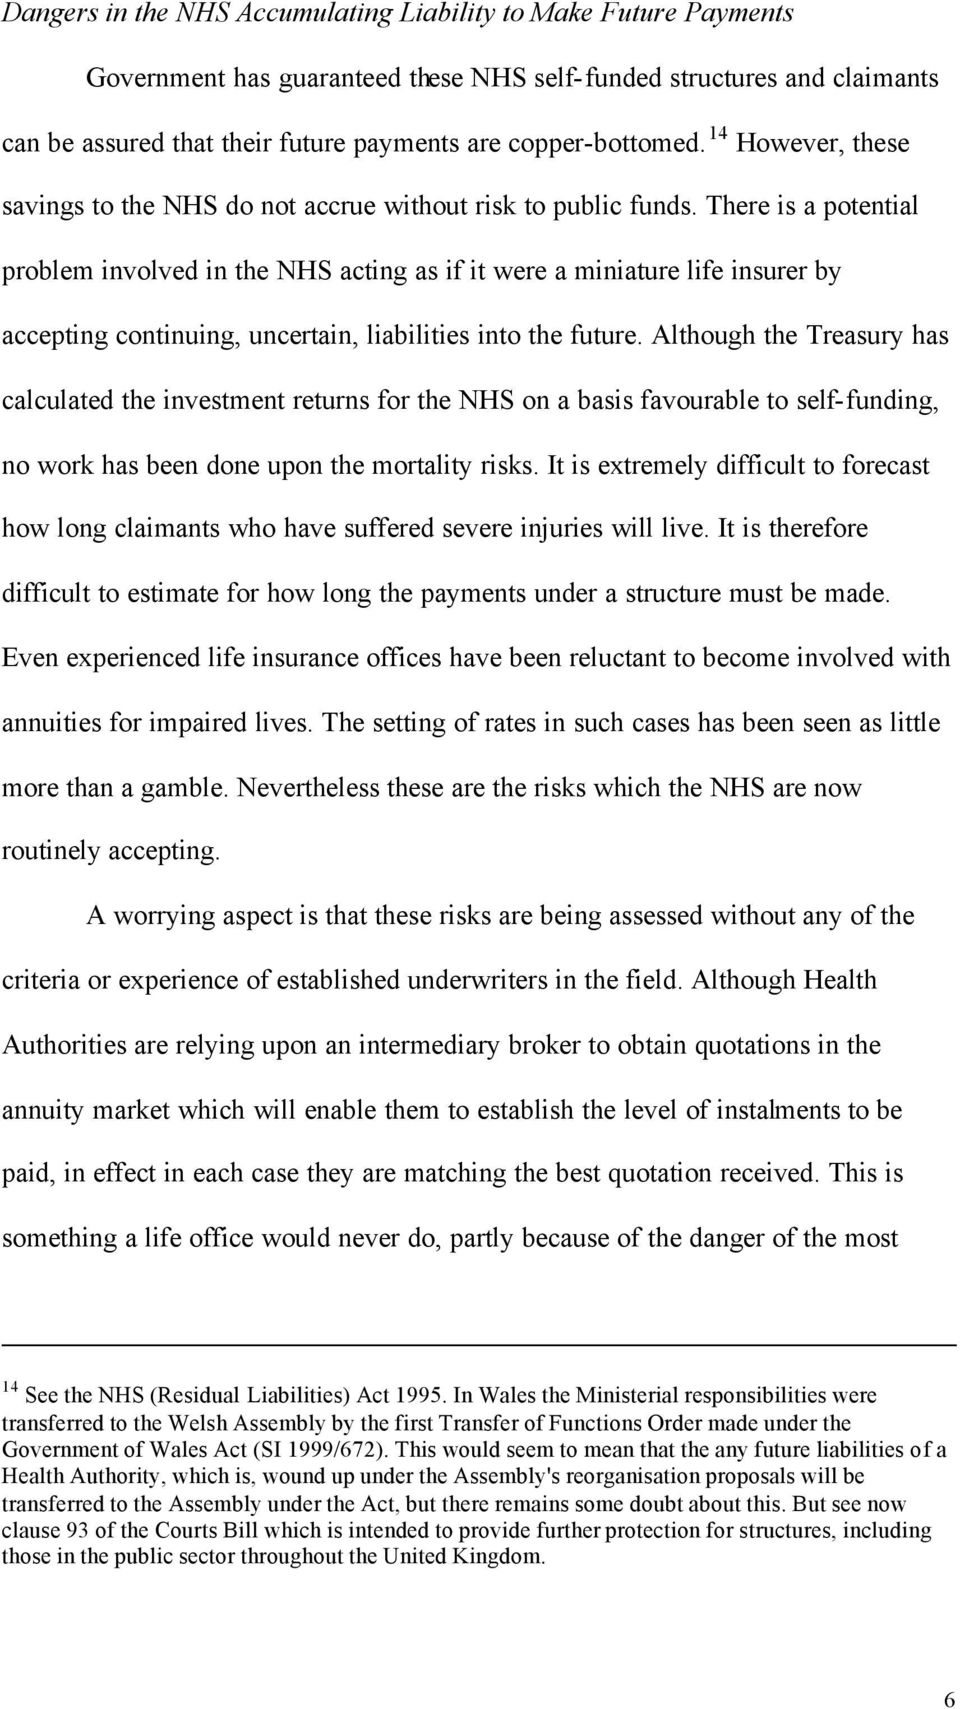 There is a potential problem involved in the NHS acting as if it were a miniature life insurer by accepting continuing, uncertain, liabilities into the future.